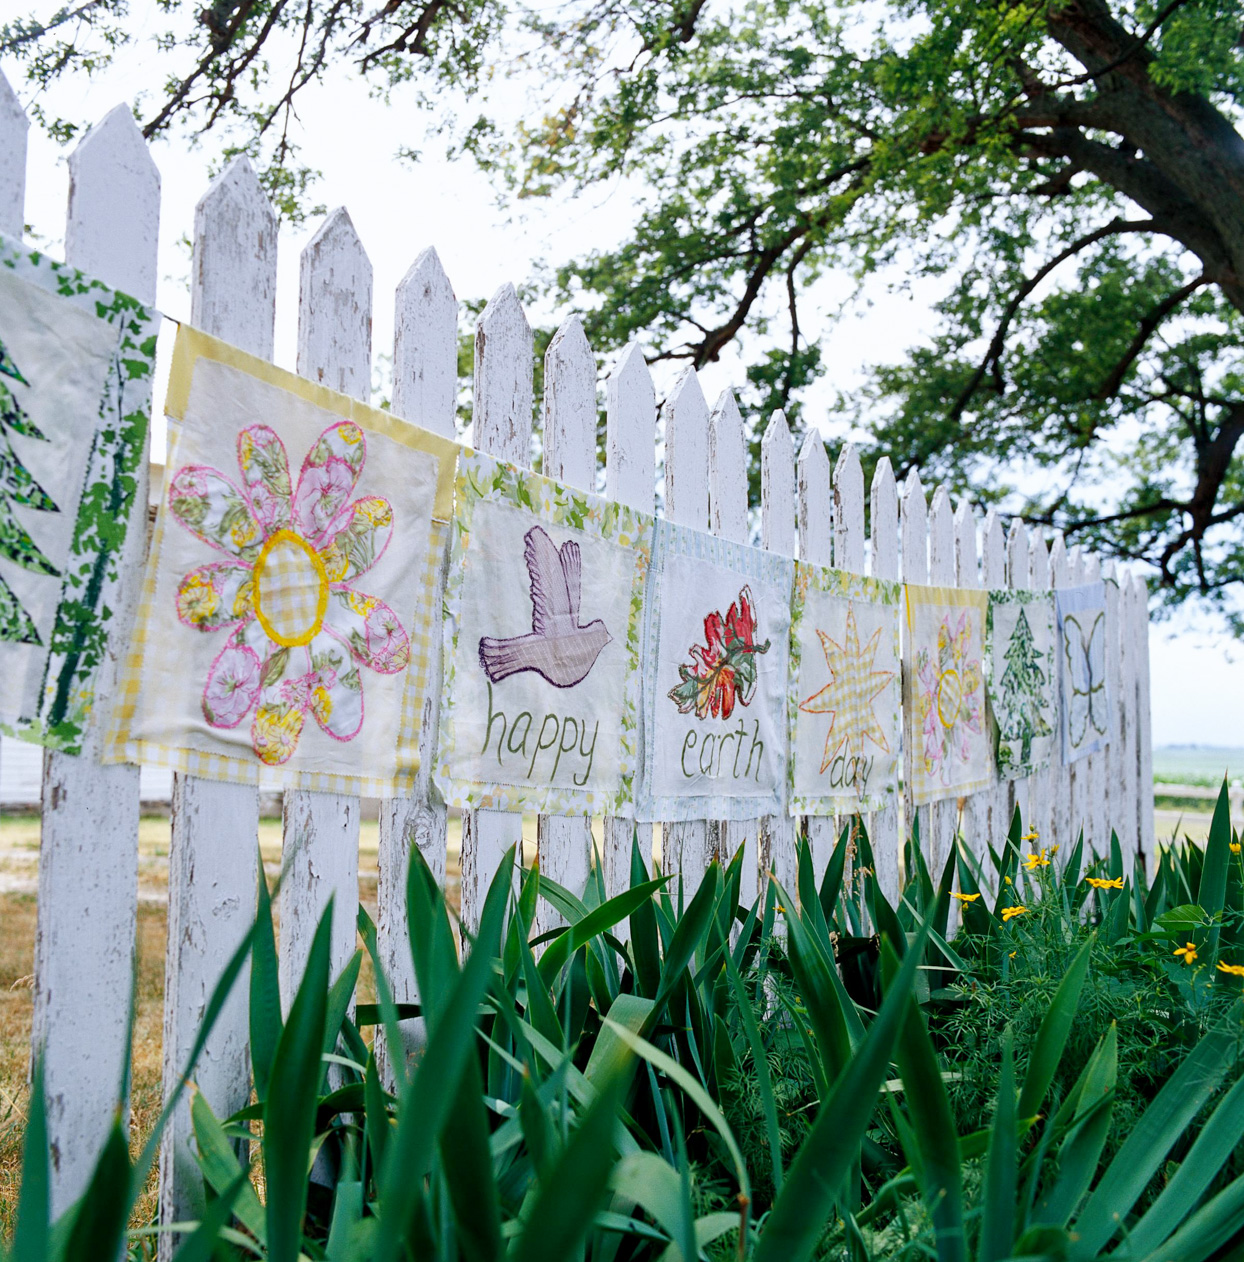 Earth Day Banner on picket fence